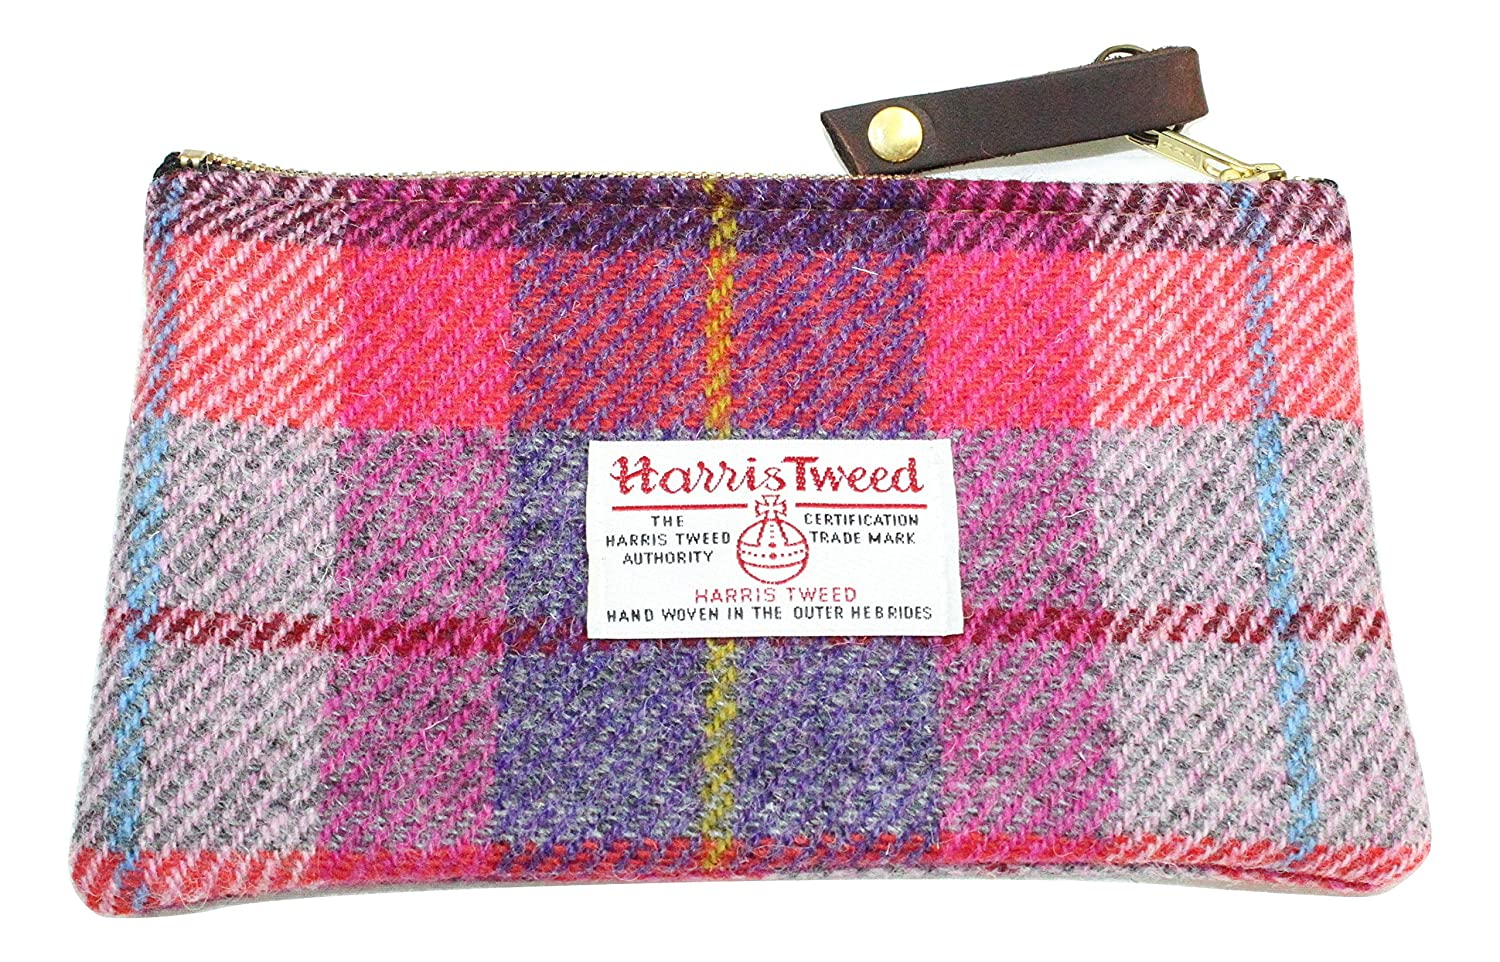 Amazon.com: Harris Tweed – Monedero Bolsa de cosméticos ...